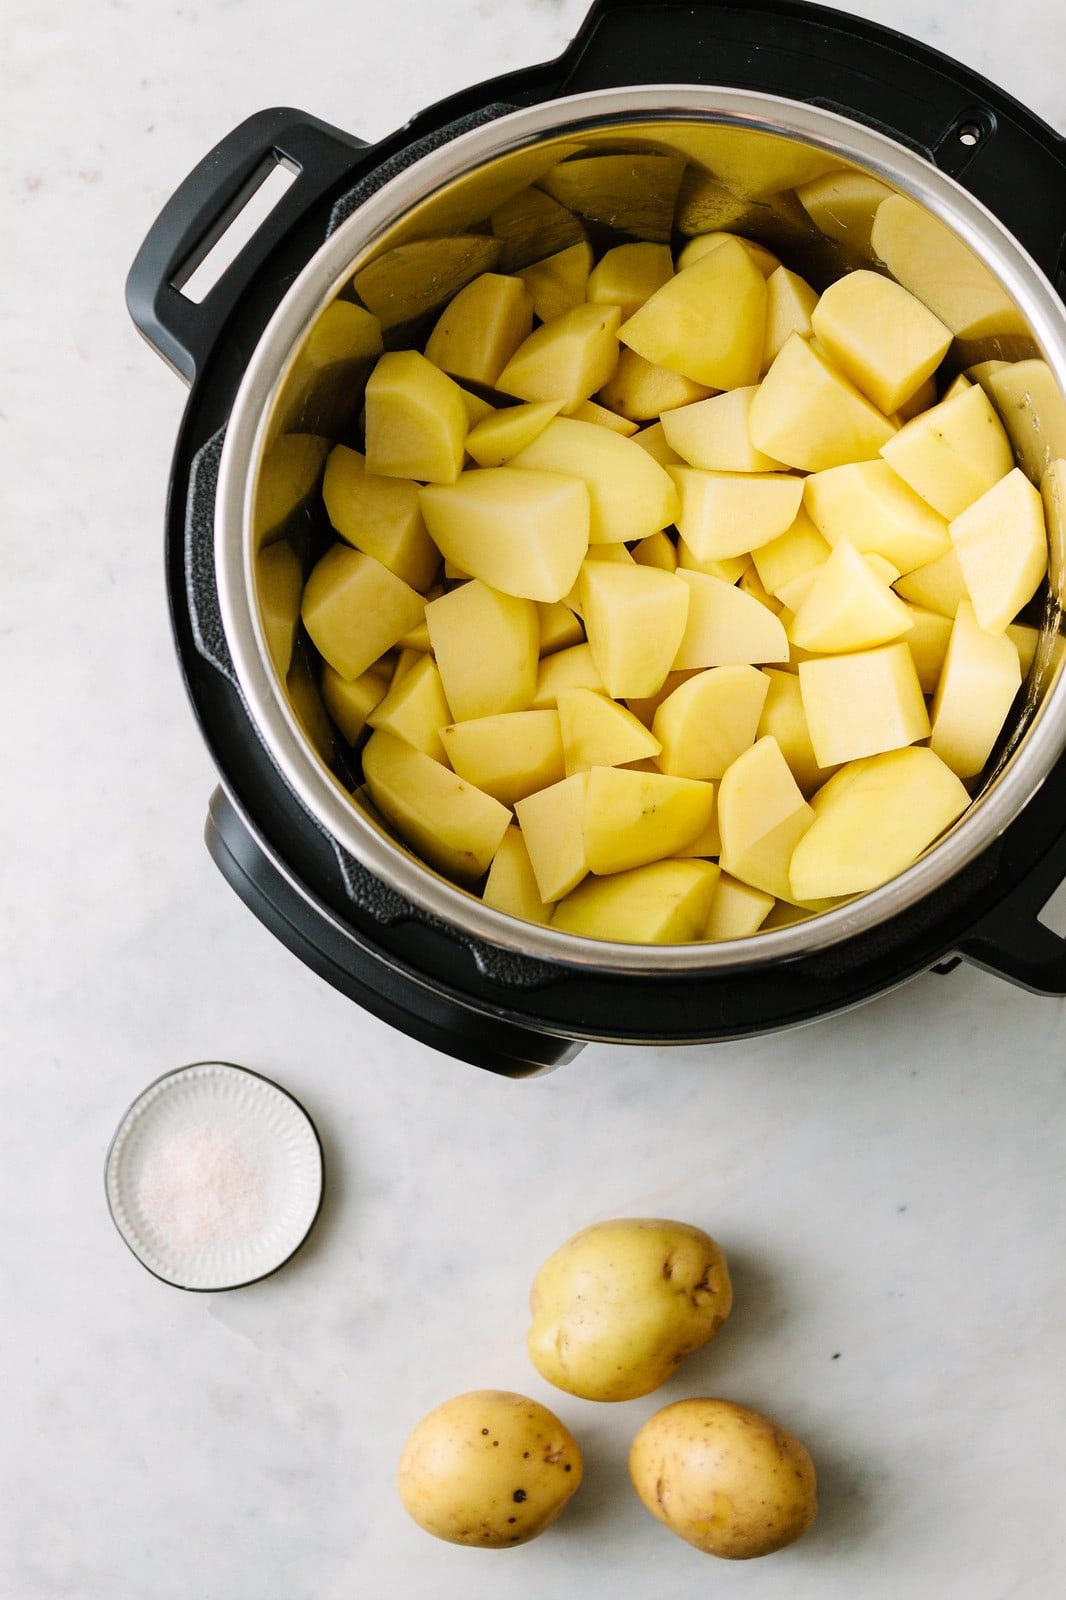 top down view of instant pot with potatoes getting ready to make vegan mashed potatoes.